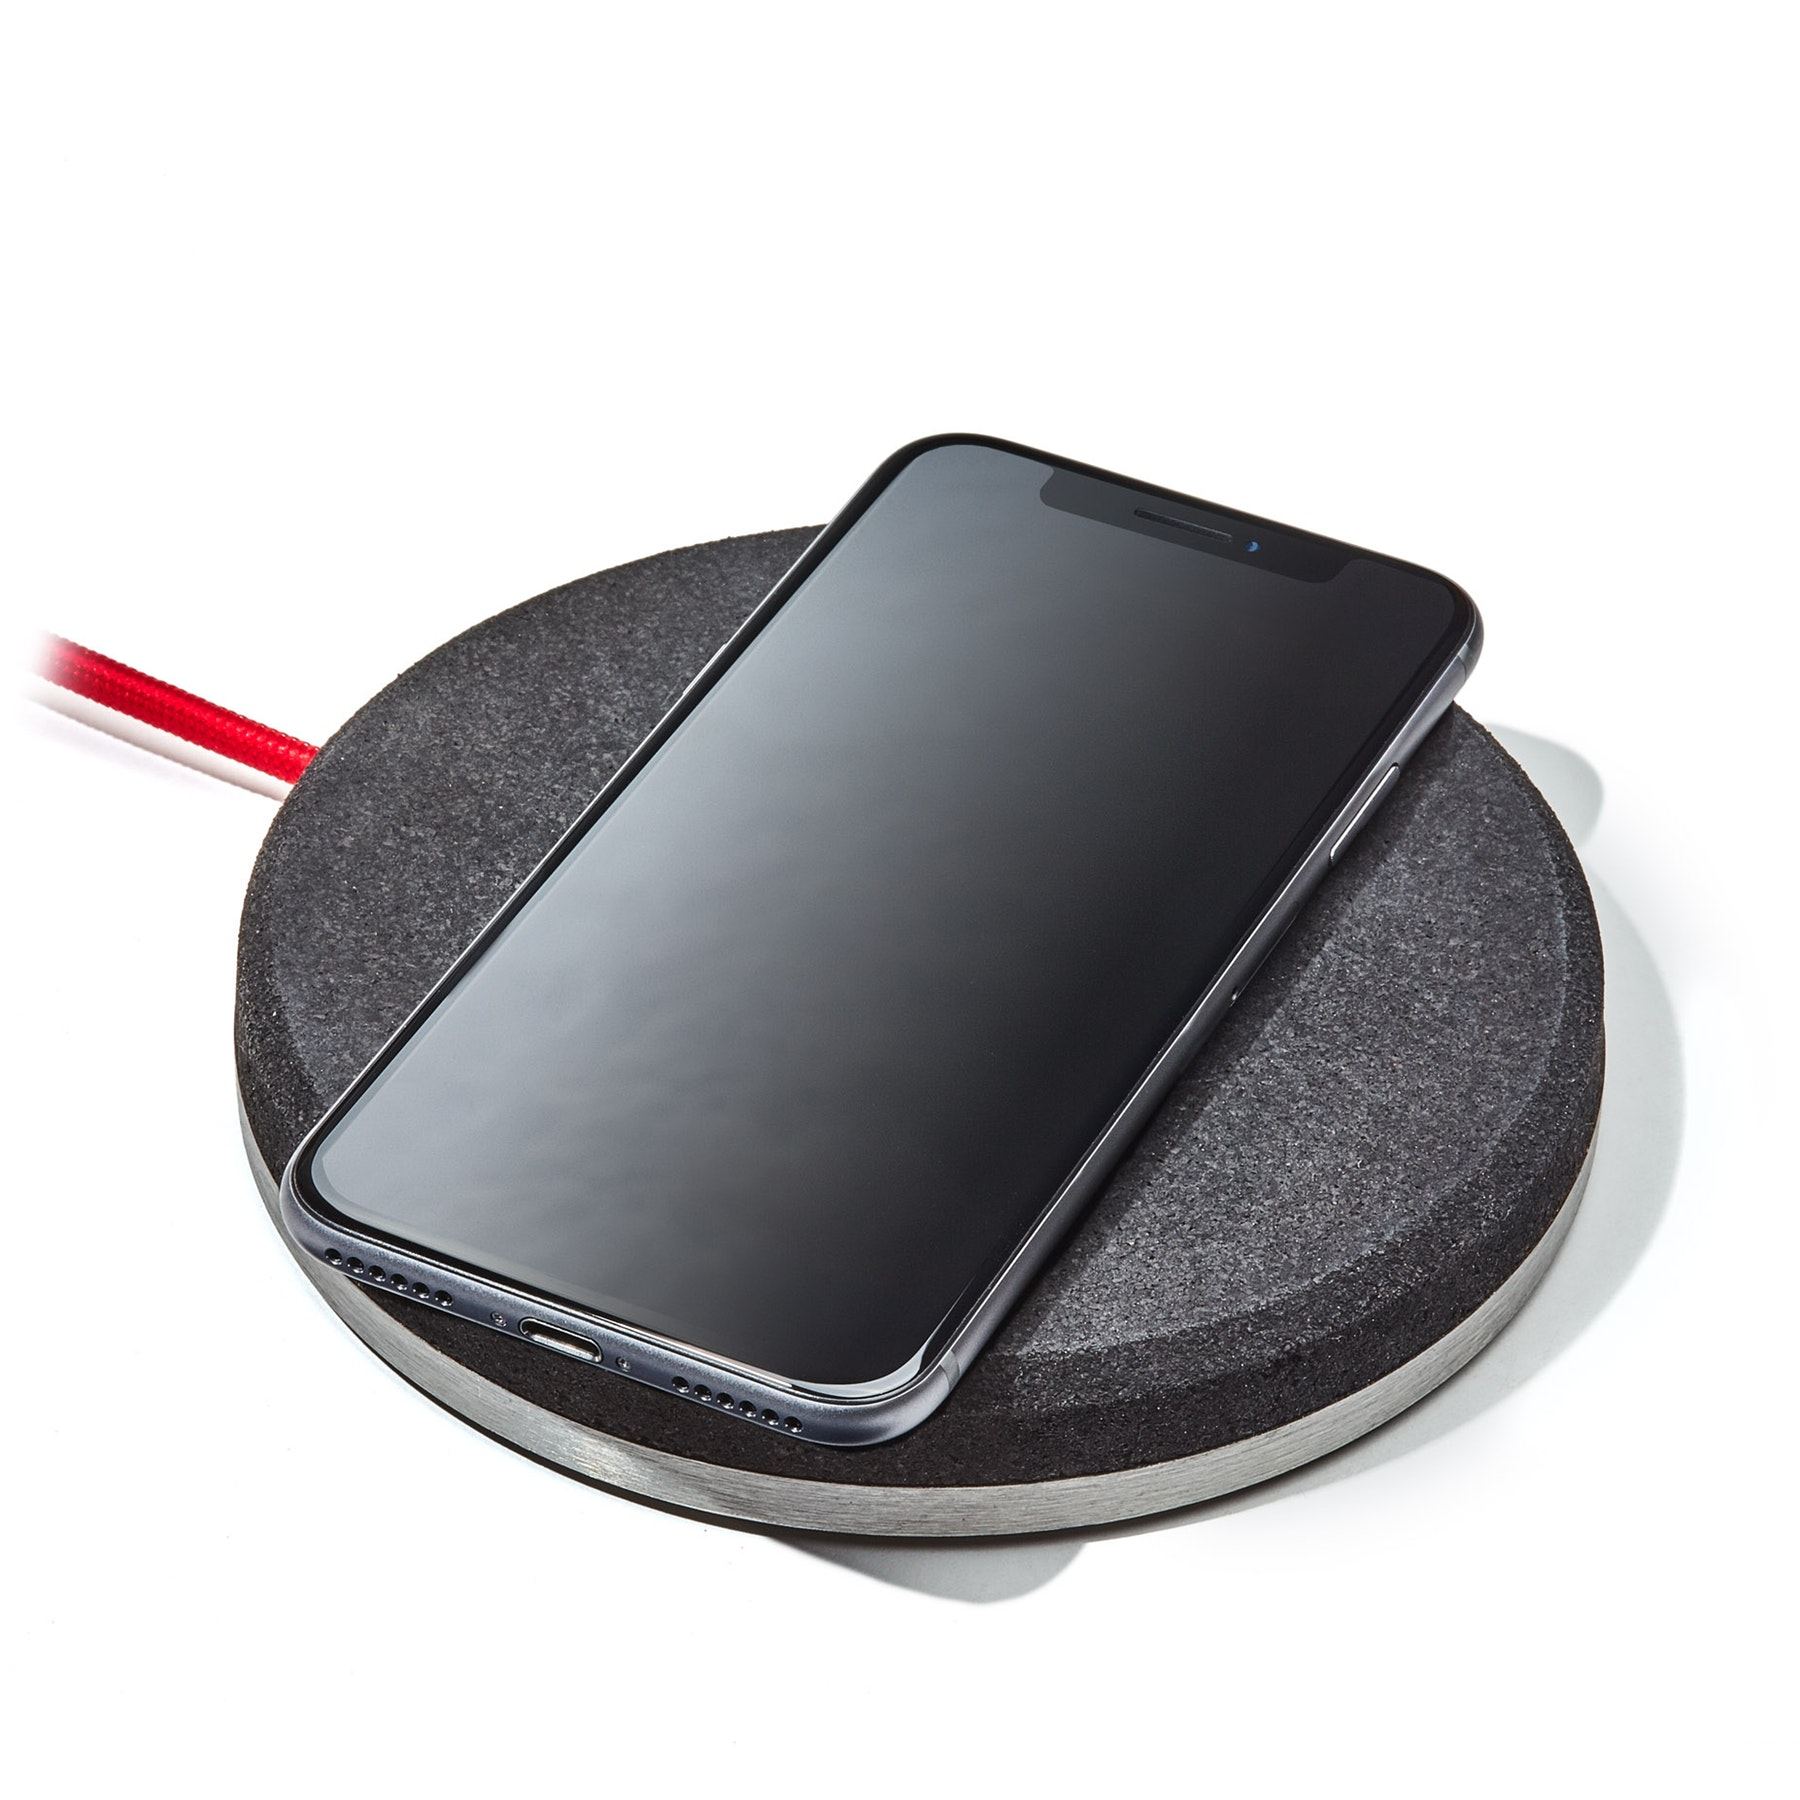 Wireless Charging Pad from Grovemade